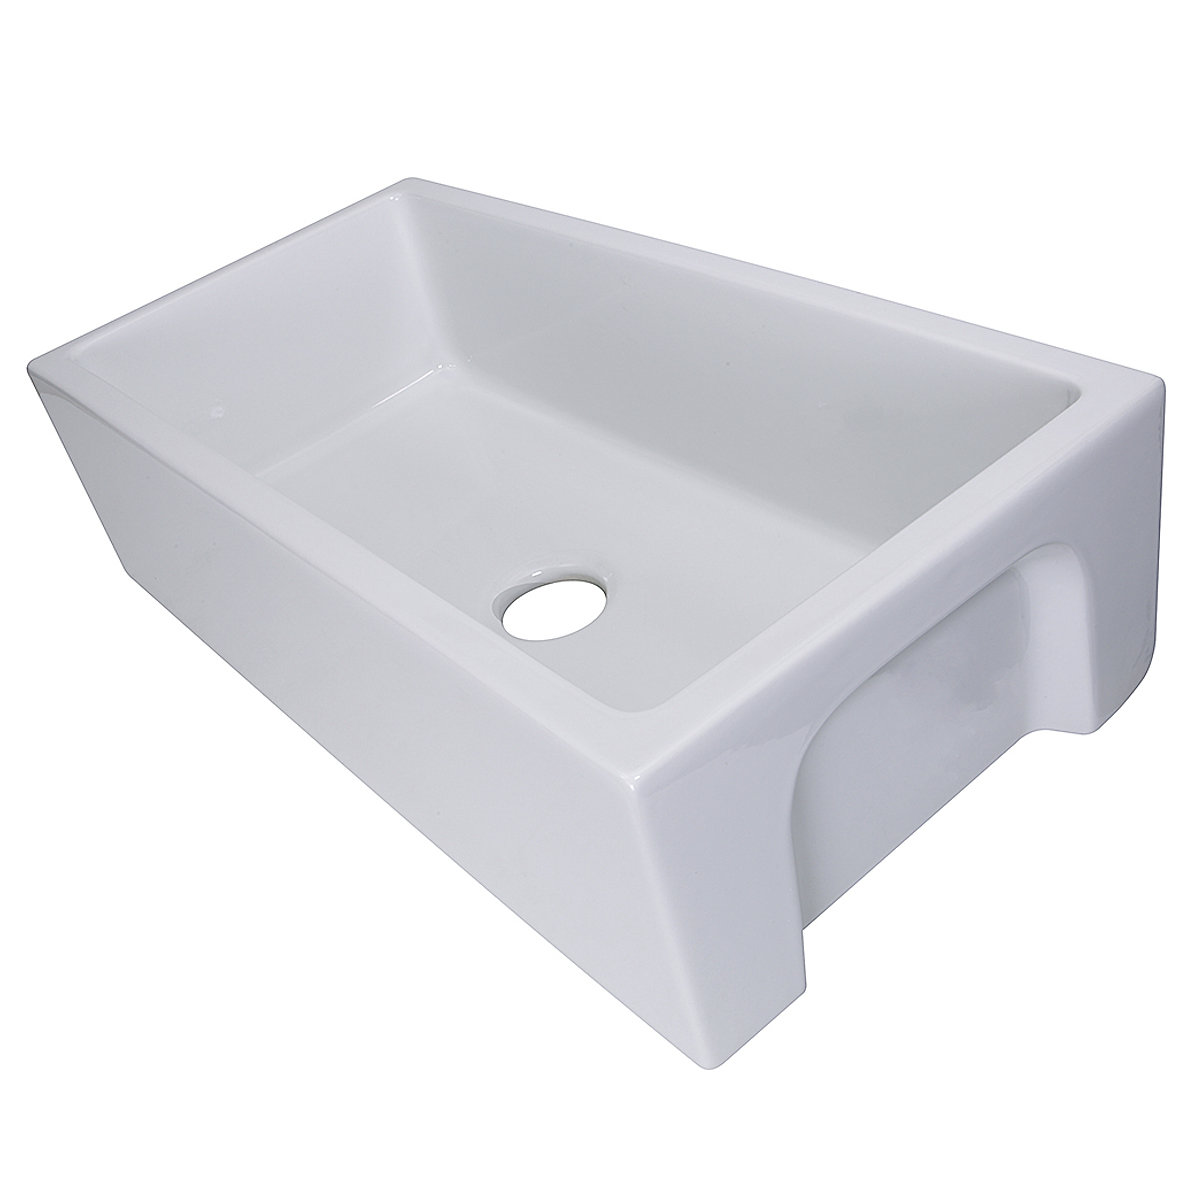 genuine italian fireclay apron sink base required ask your designer or contractor for details